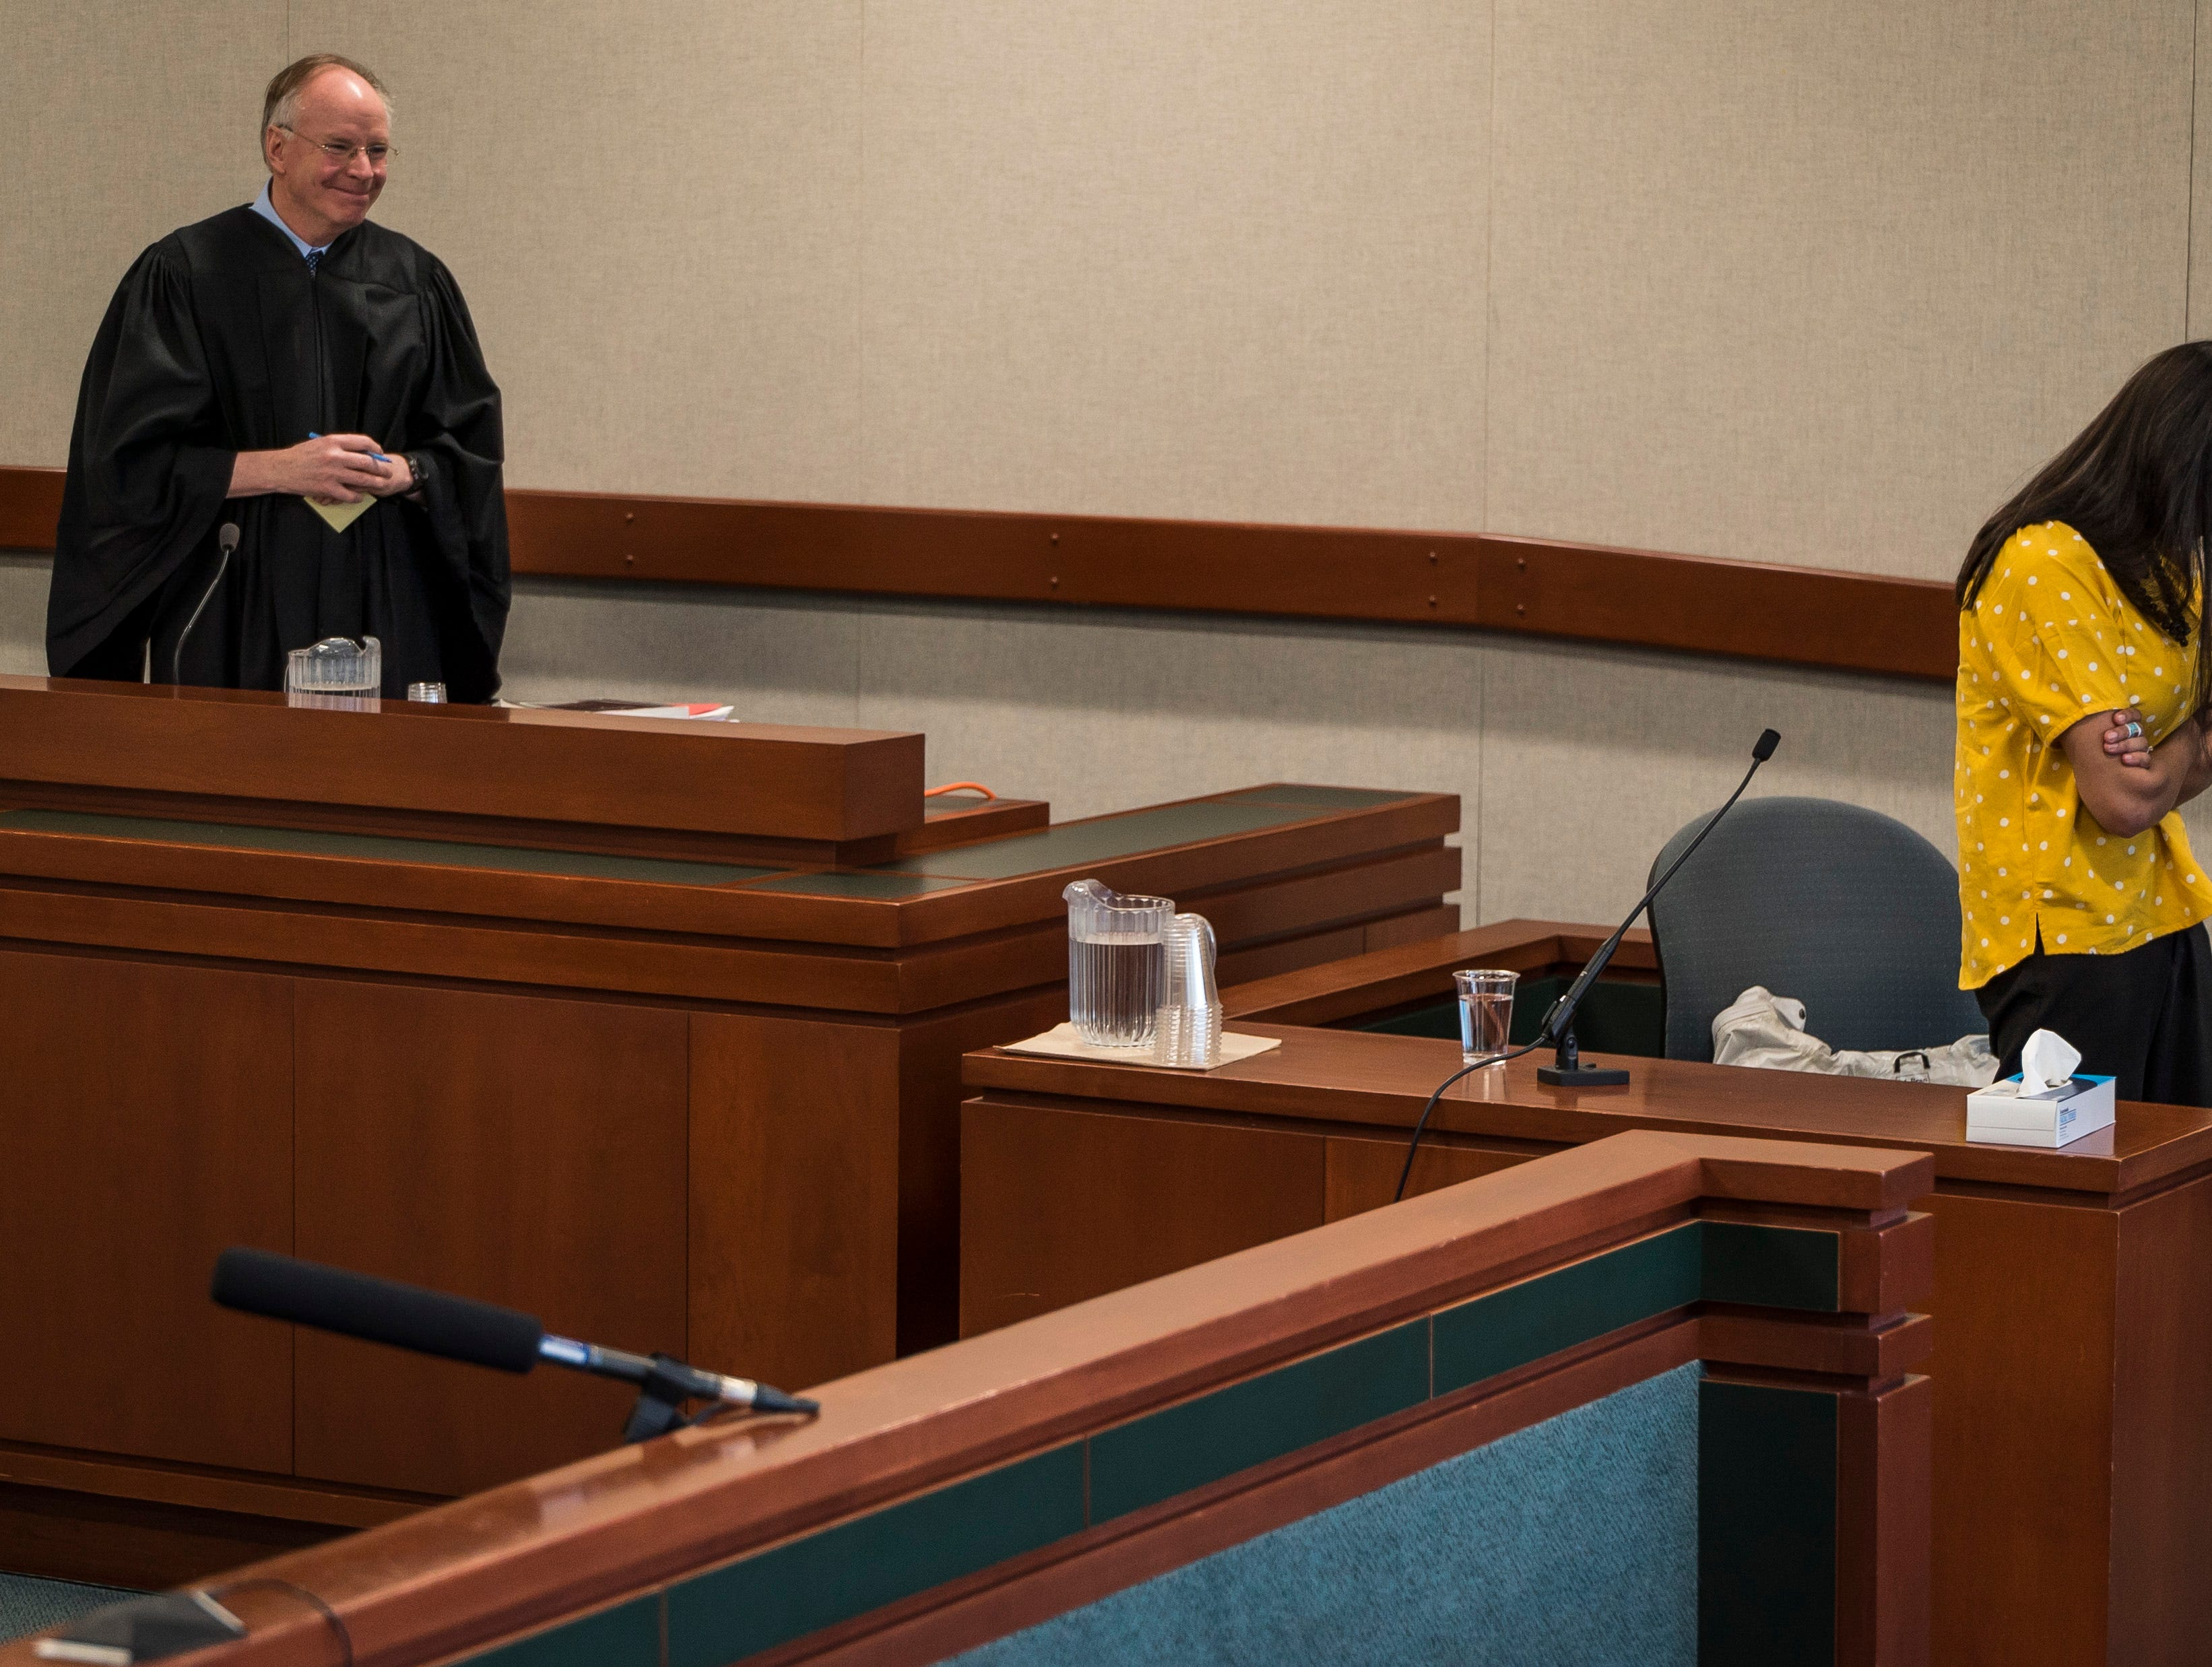 Judge Kevin Griffin pauses testimony and called witness Anila Lawrence, who was in a relationship with Steven Bourgoin, to conference with attorneys in Vermont Superior Court in Burlington on Friday, May 10, 2019. Lawrence was visibly upset at several points during her testimony, describing her relationship with Bourgoin, his assault of Lawrence, and other details about his behavior. Bourgoin faces second-degree murder charges in the deaths of 5 teens killed in a crash on I89 in 2016.